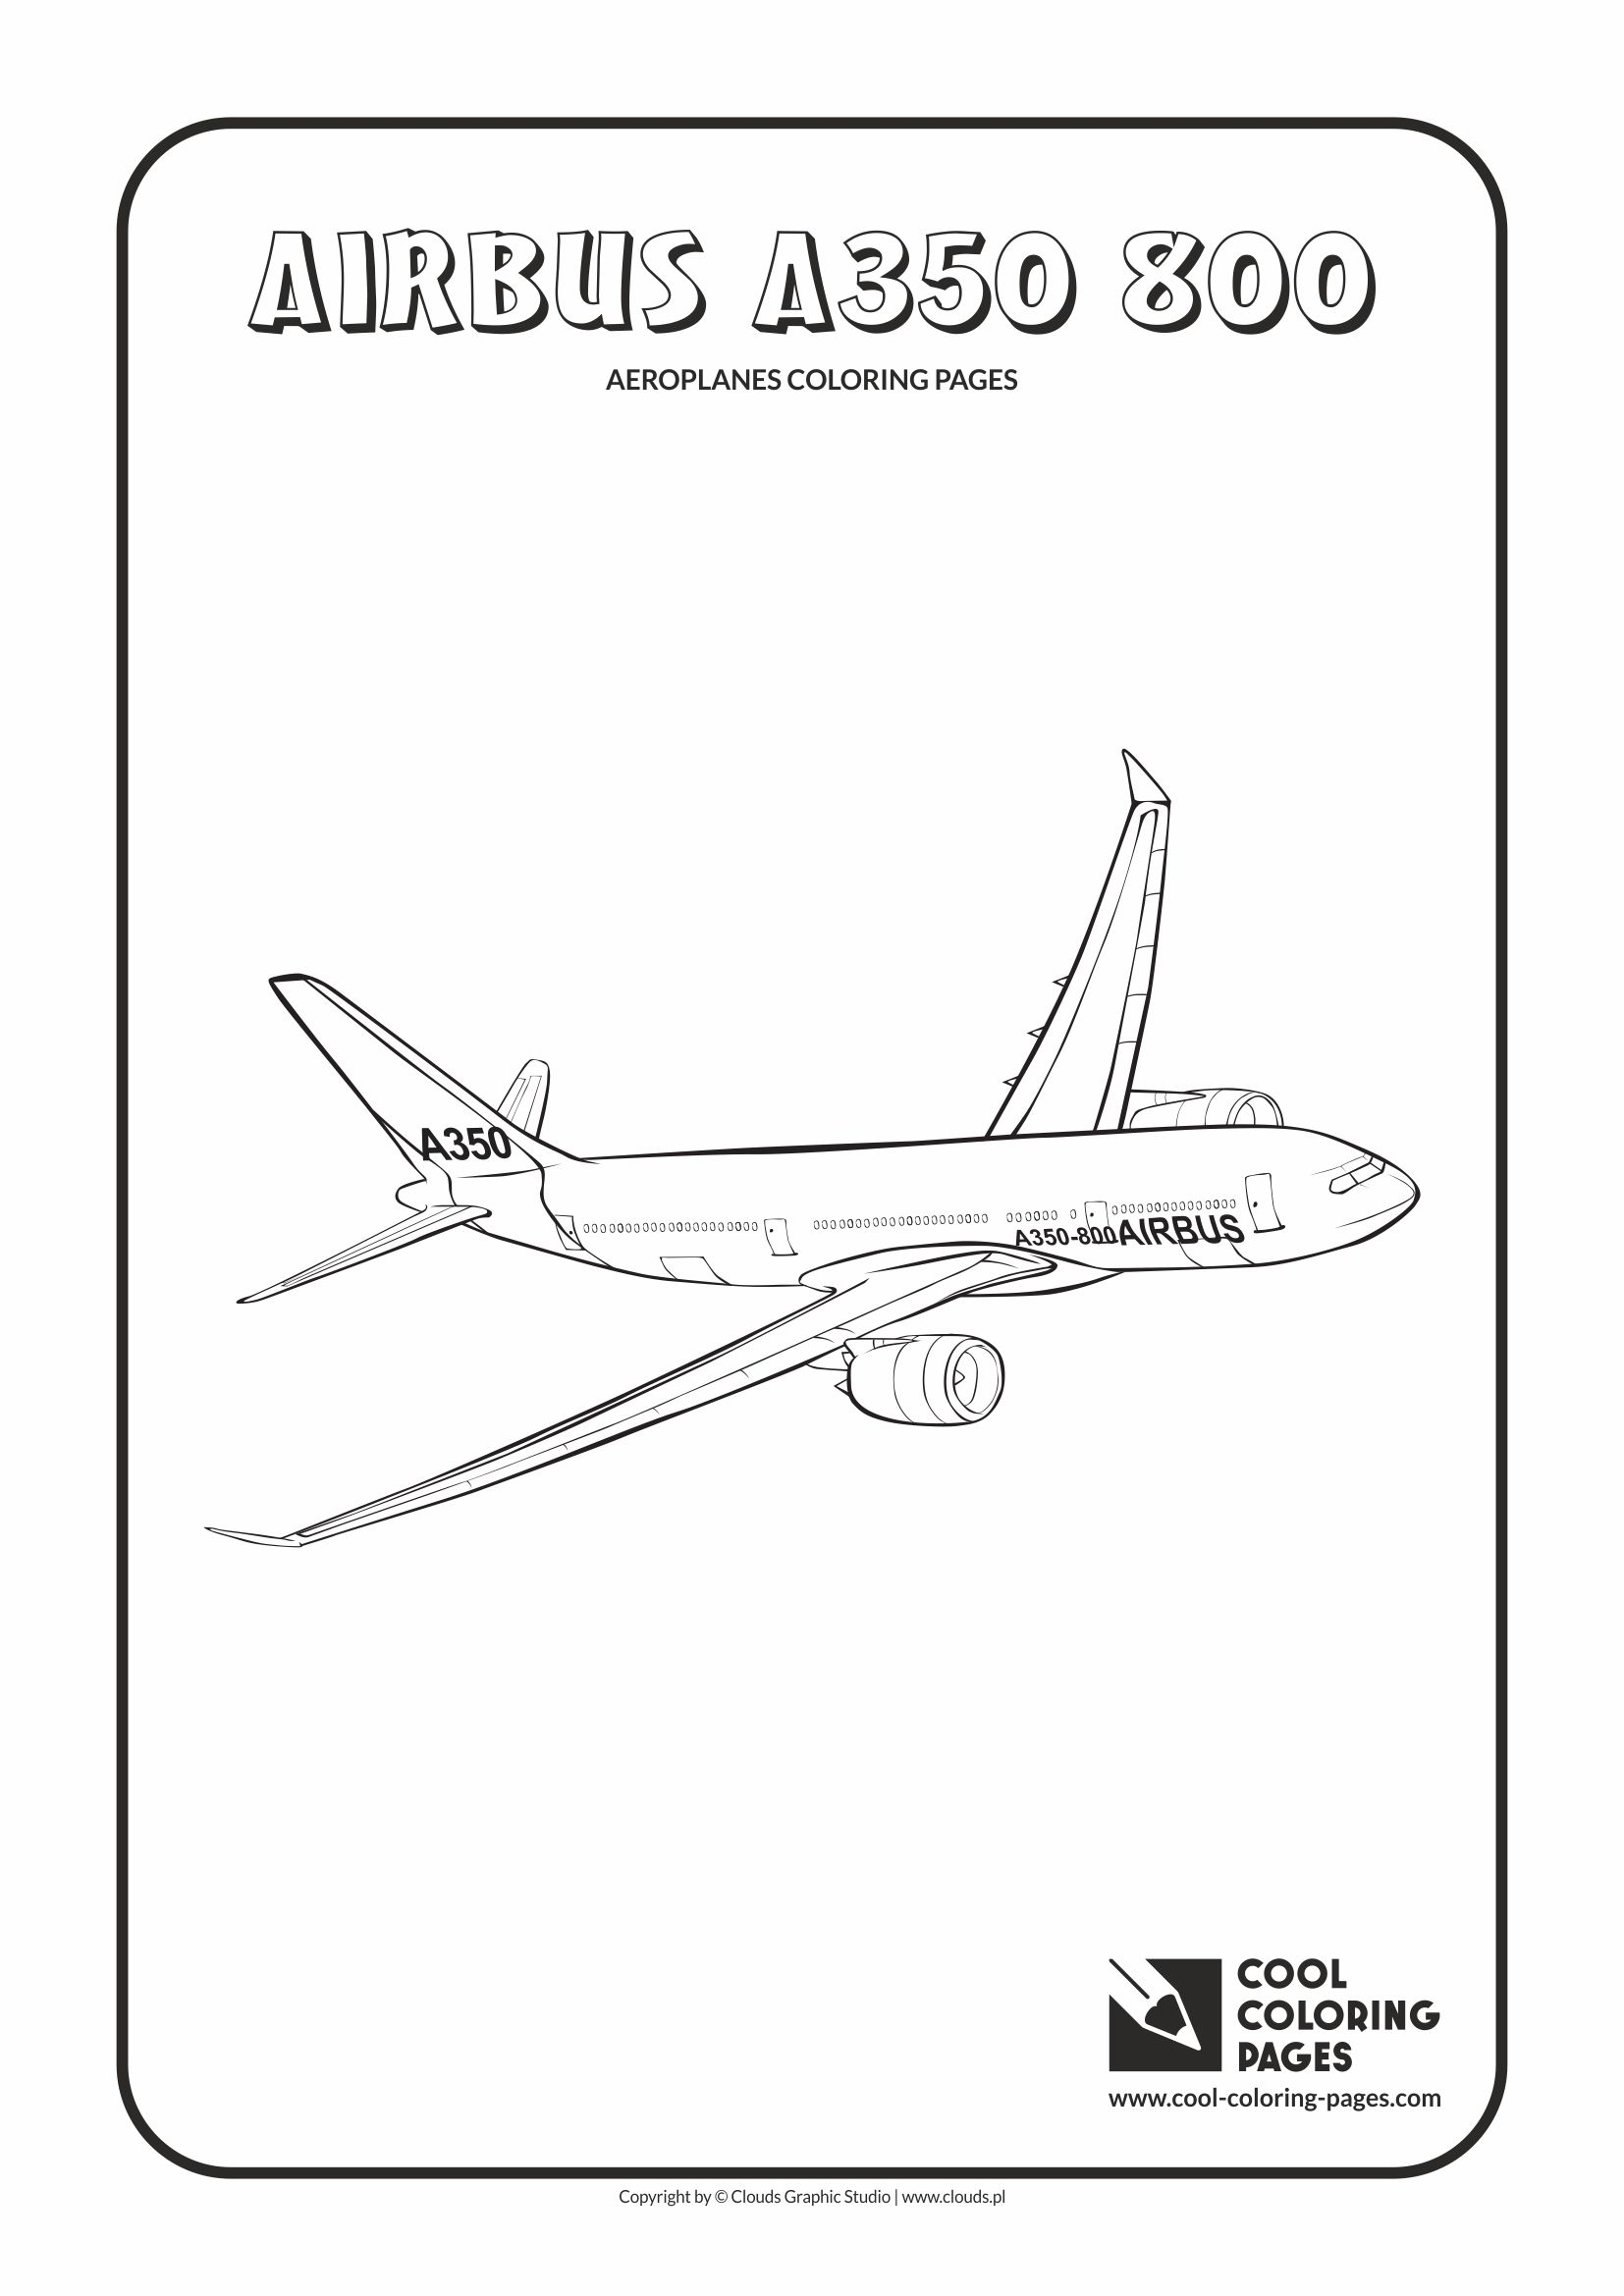 cool coloring pages vehicles airbus a350 800 coloring page with airbus a350 800